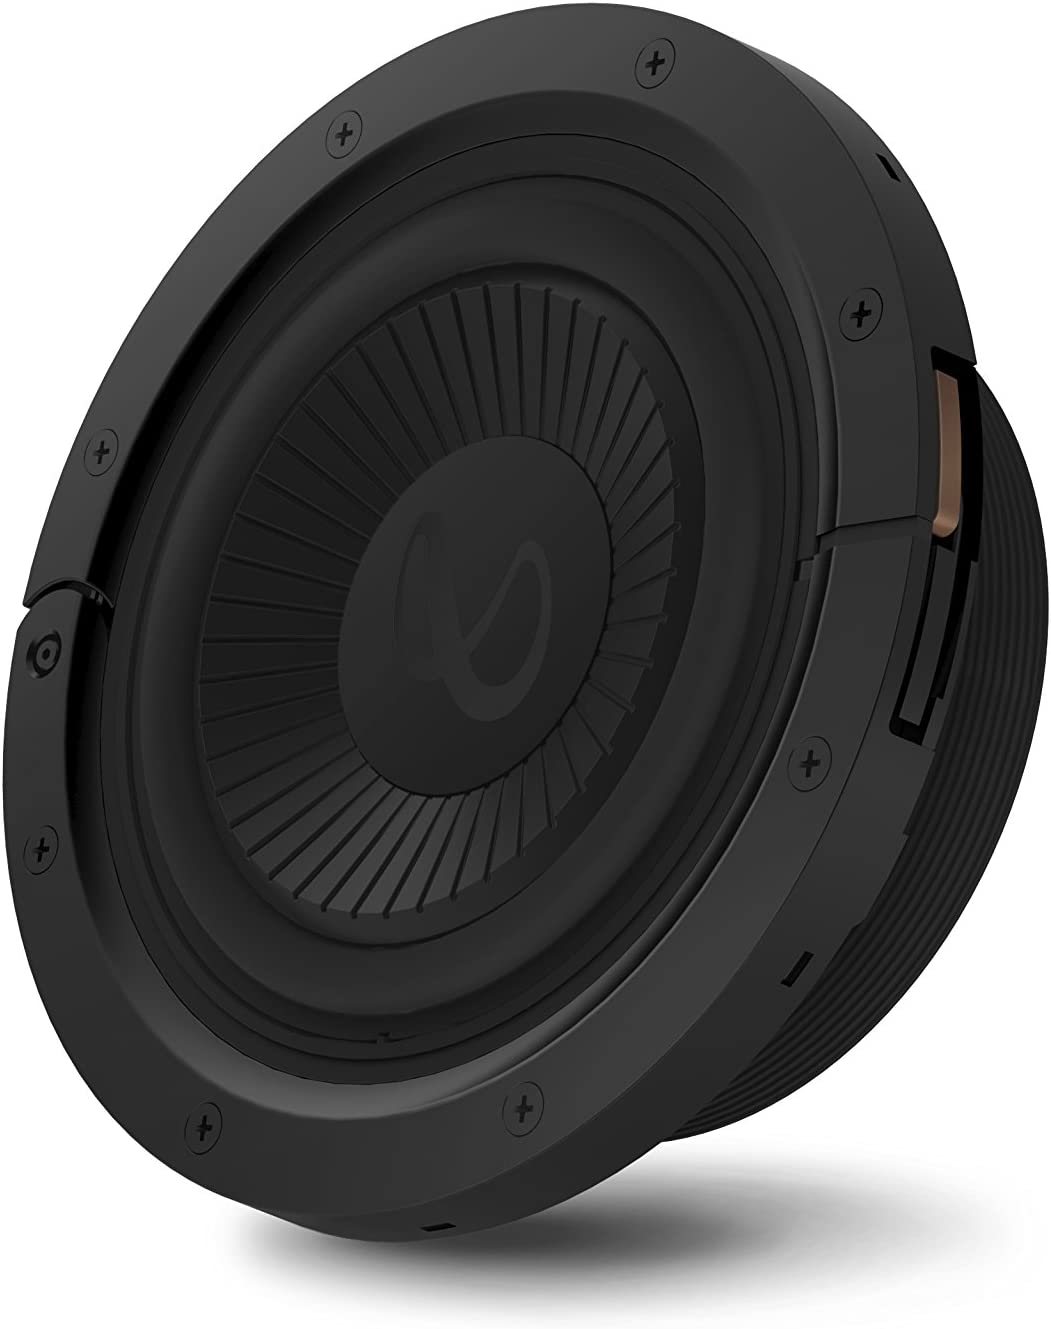 Infinity REF-FLEX8D Reference 8 Inch Universal Fit Dual Voice Coil subwoofer